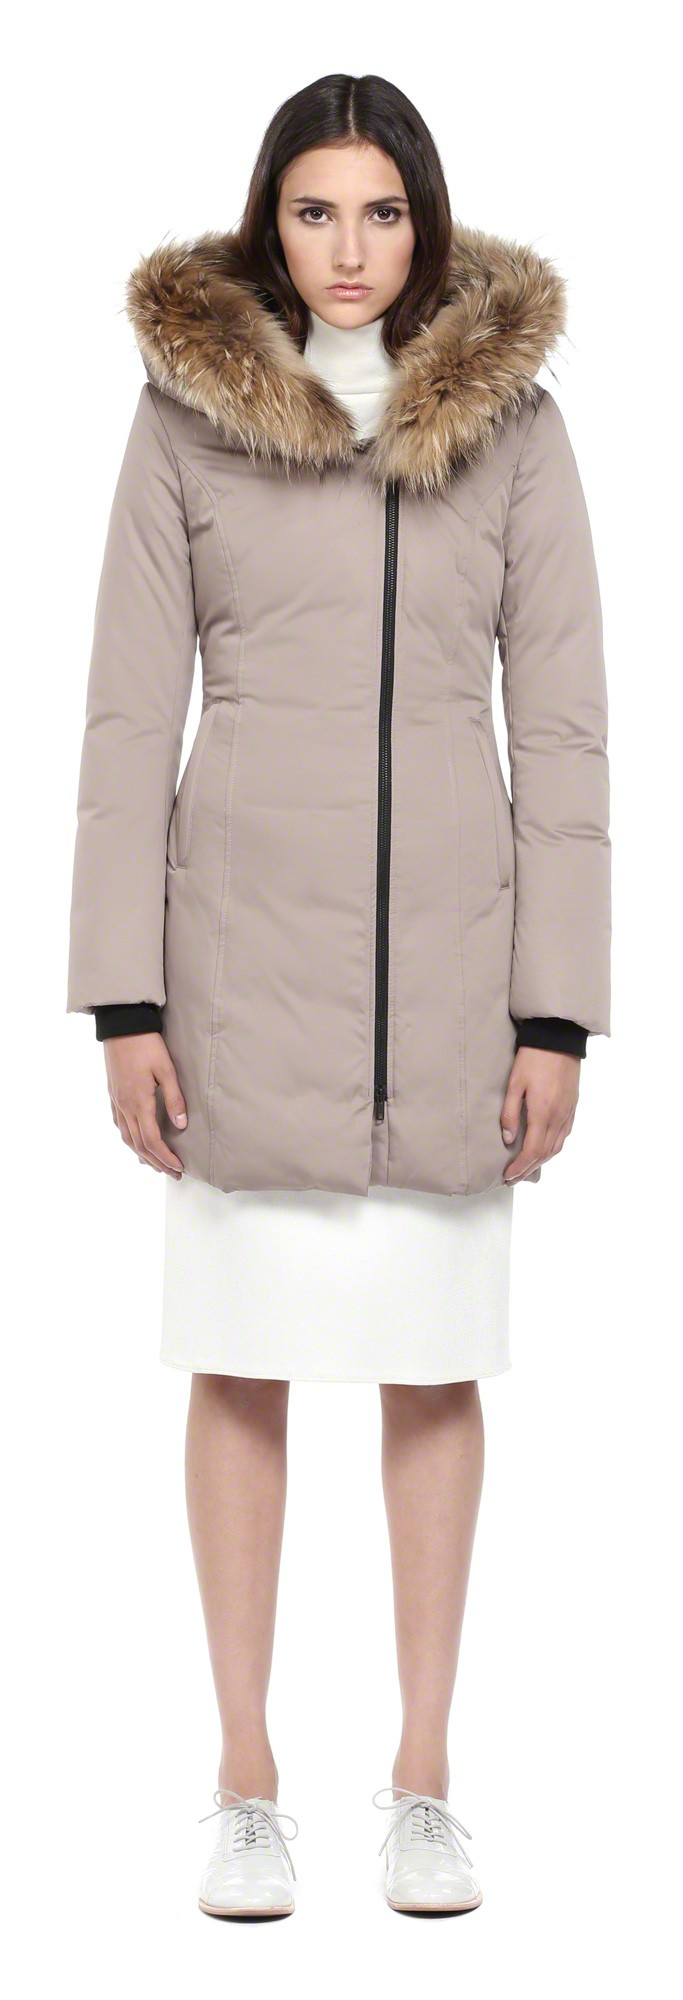 416d680a9 SOIA & KYO Natural Lucinda Taupe Down Coat With Fur Trim